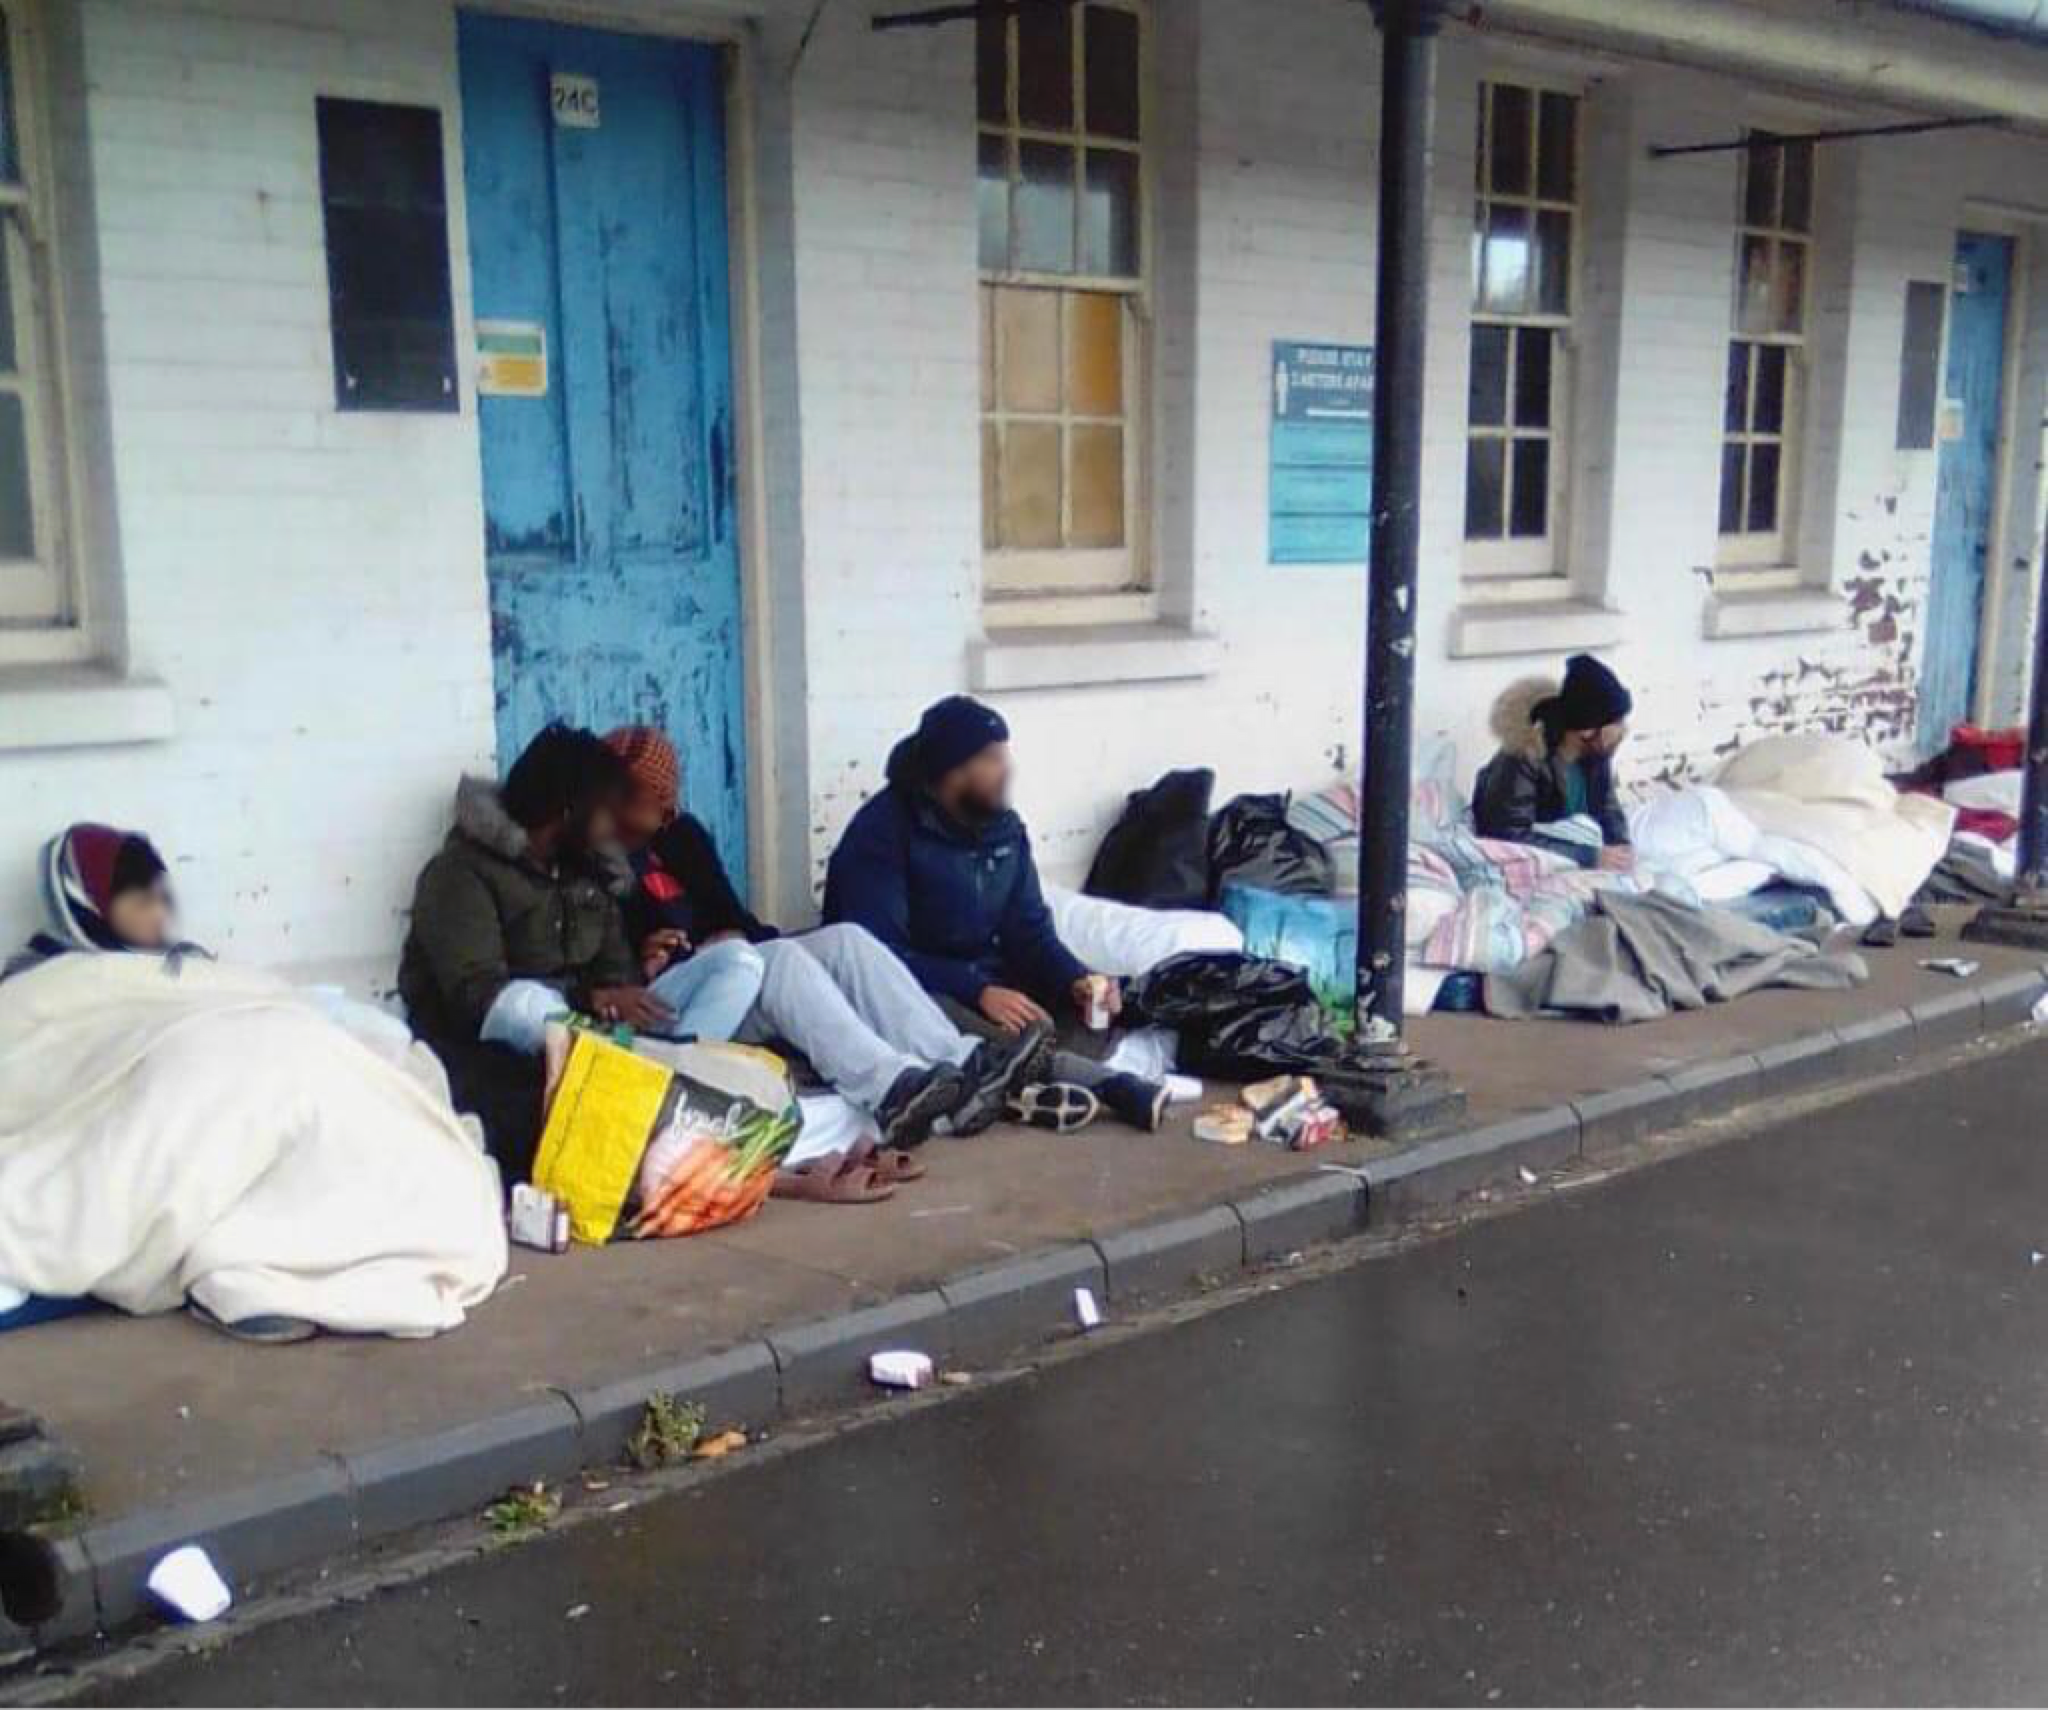 Refugees sit outside a barracks building with makeshift bedding